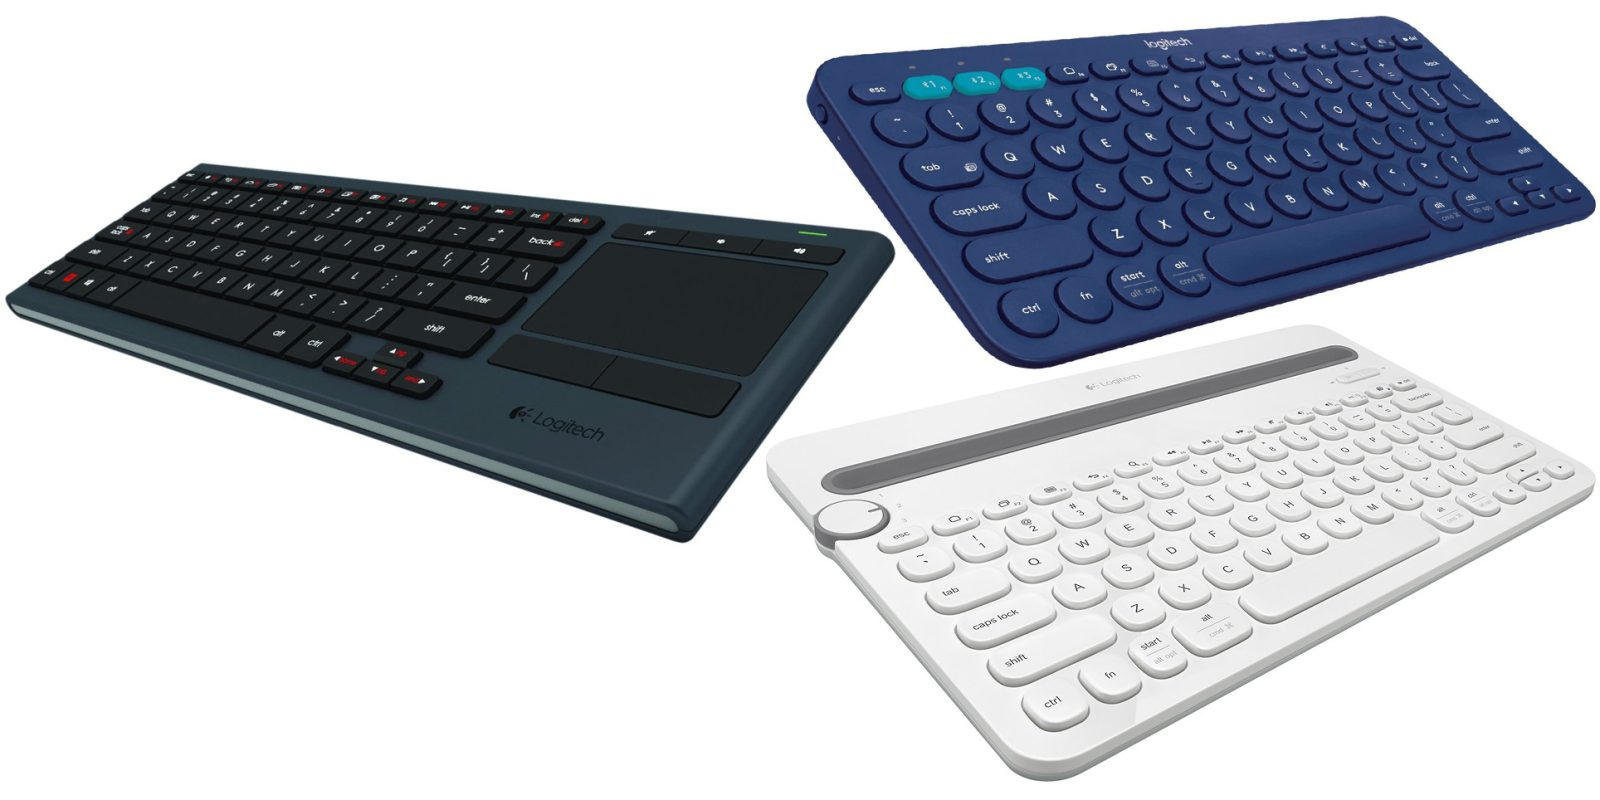 Your choice of highly-rated Logitech Bluetooth keyboards for